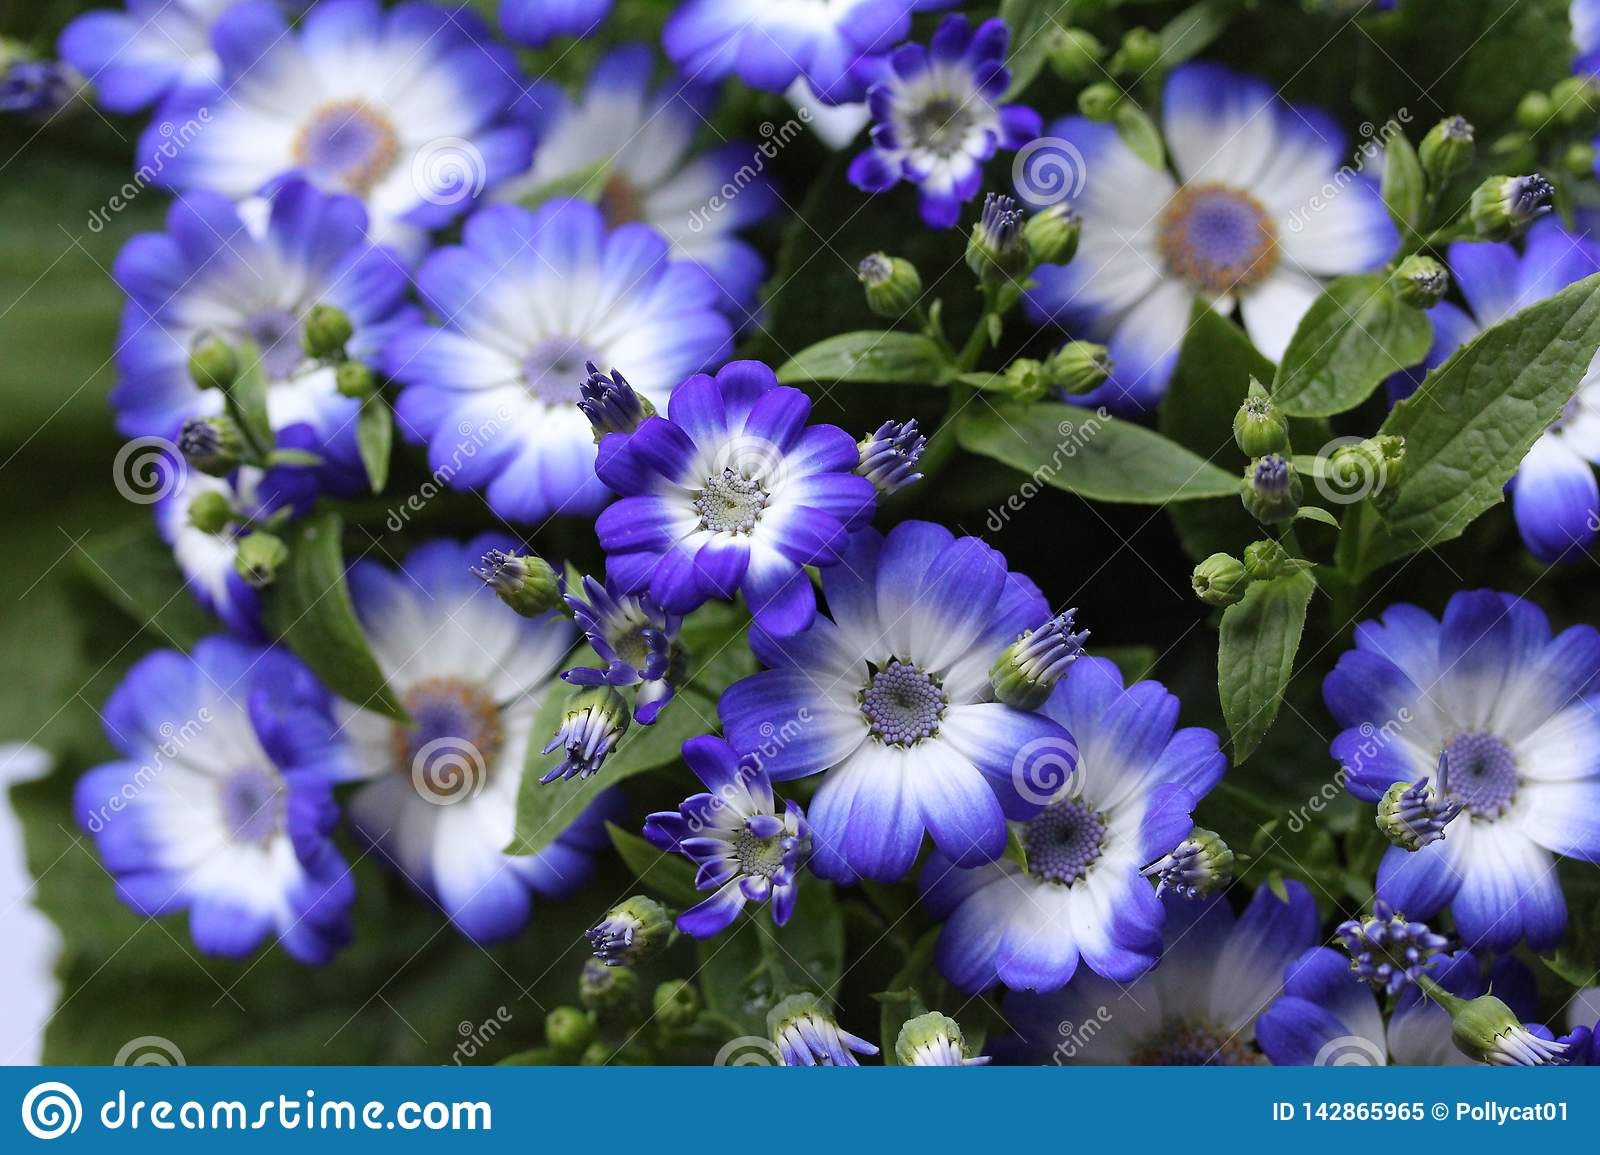 Blue flowers in the home garden 4